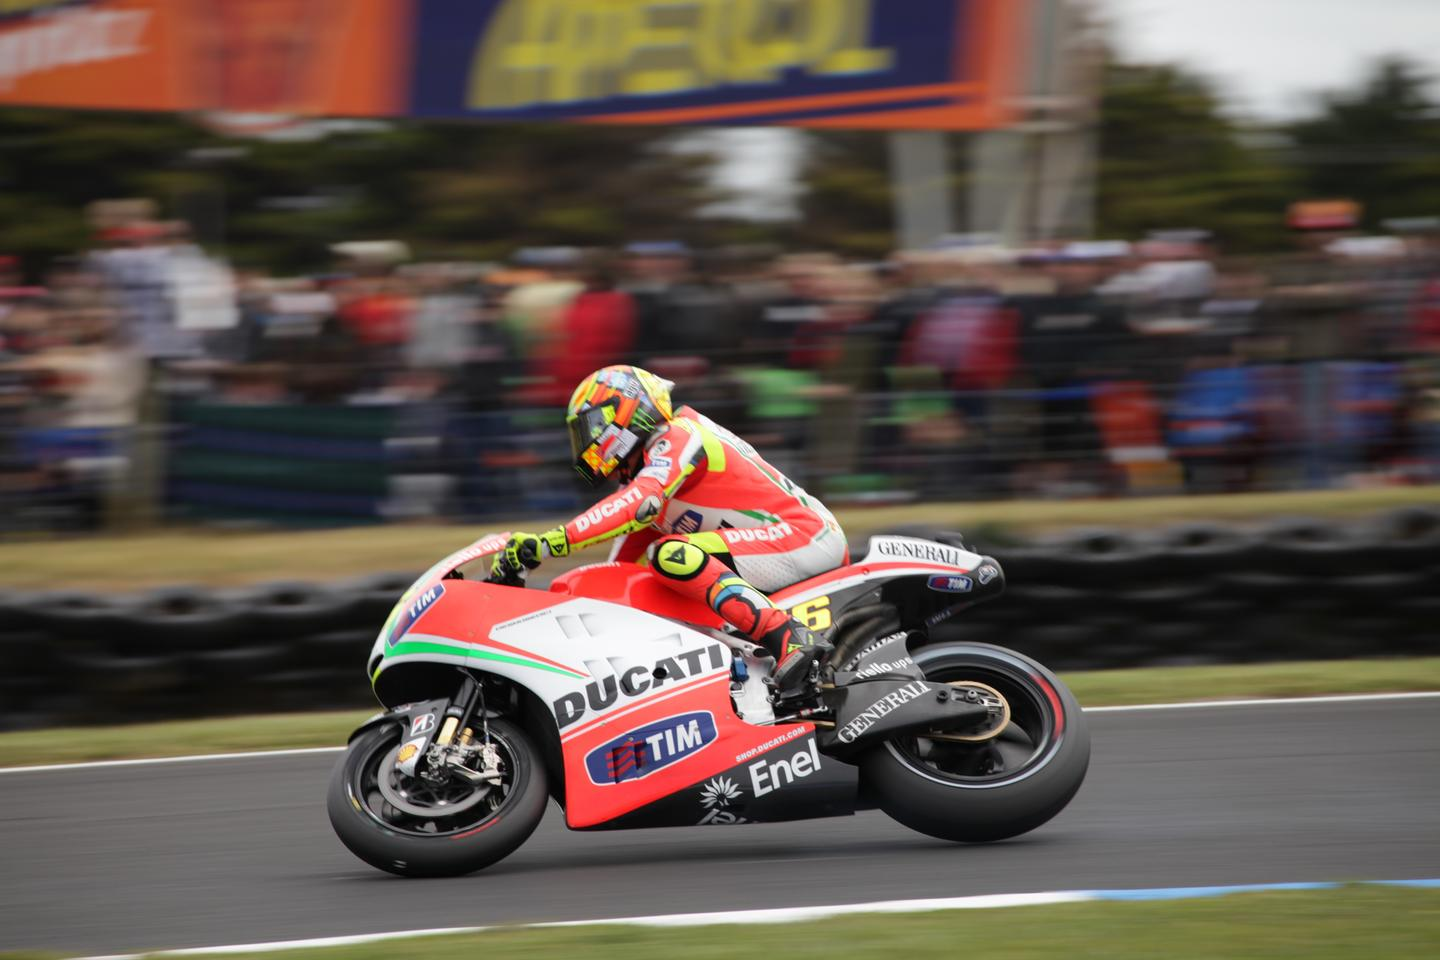 Valentino Rossi at the Australian round of the 2012 MotoGP